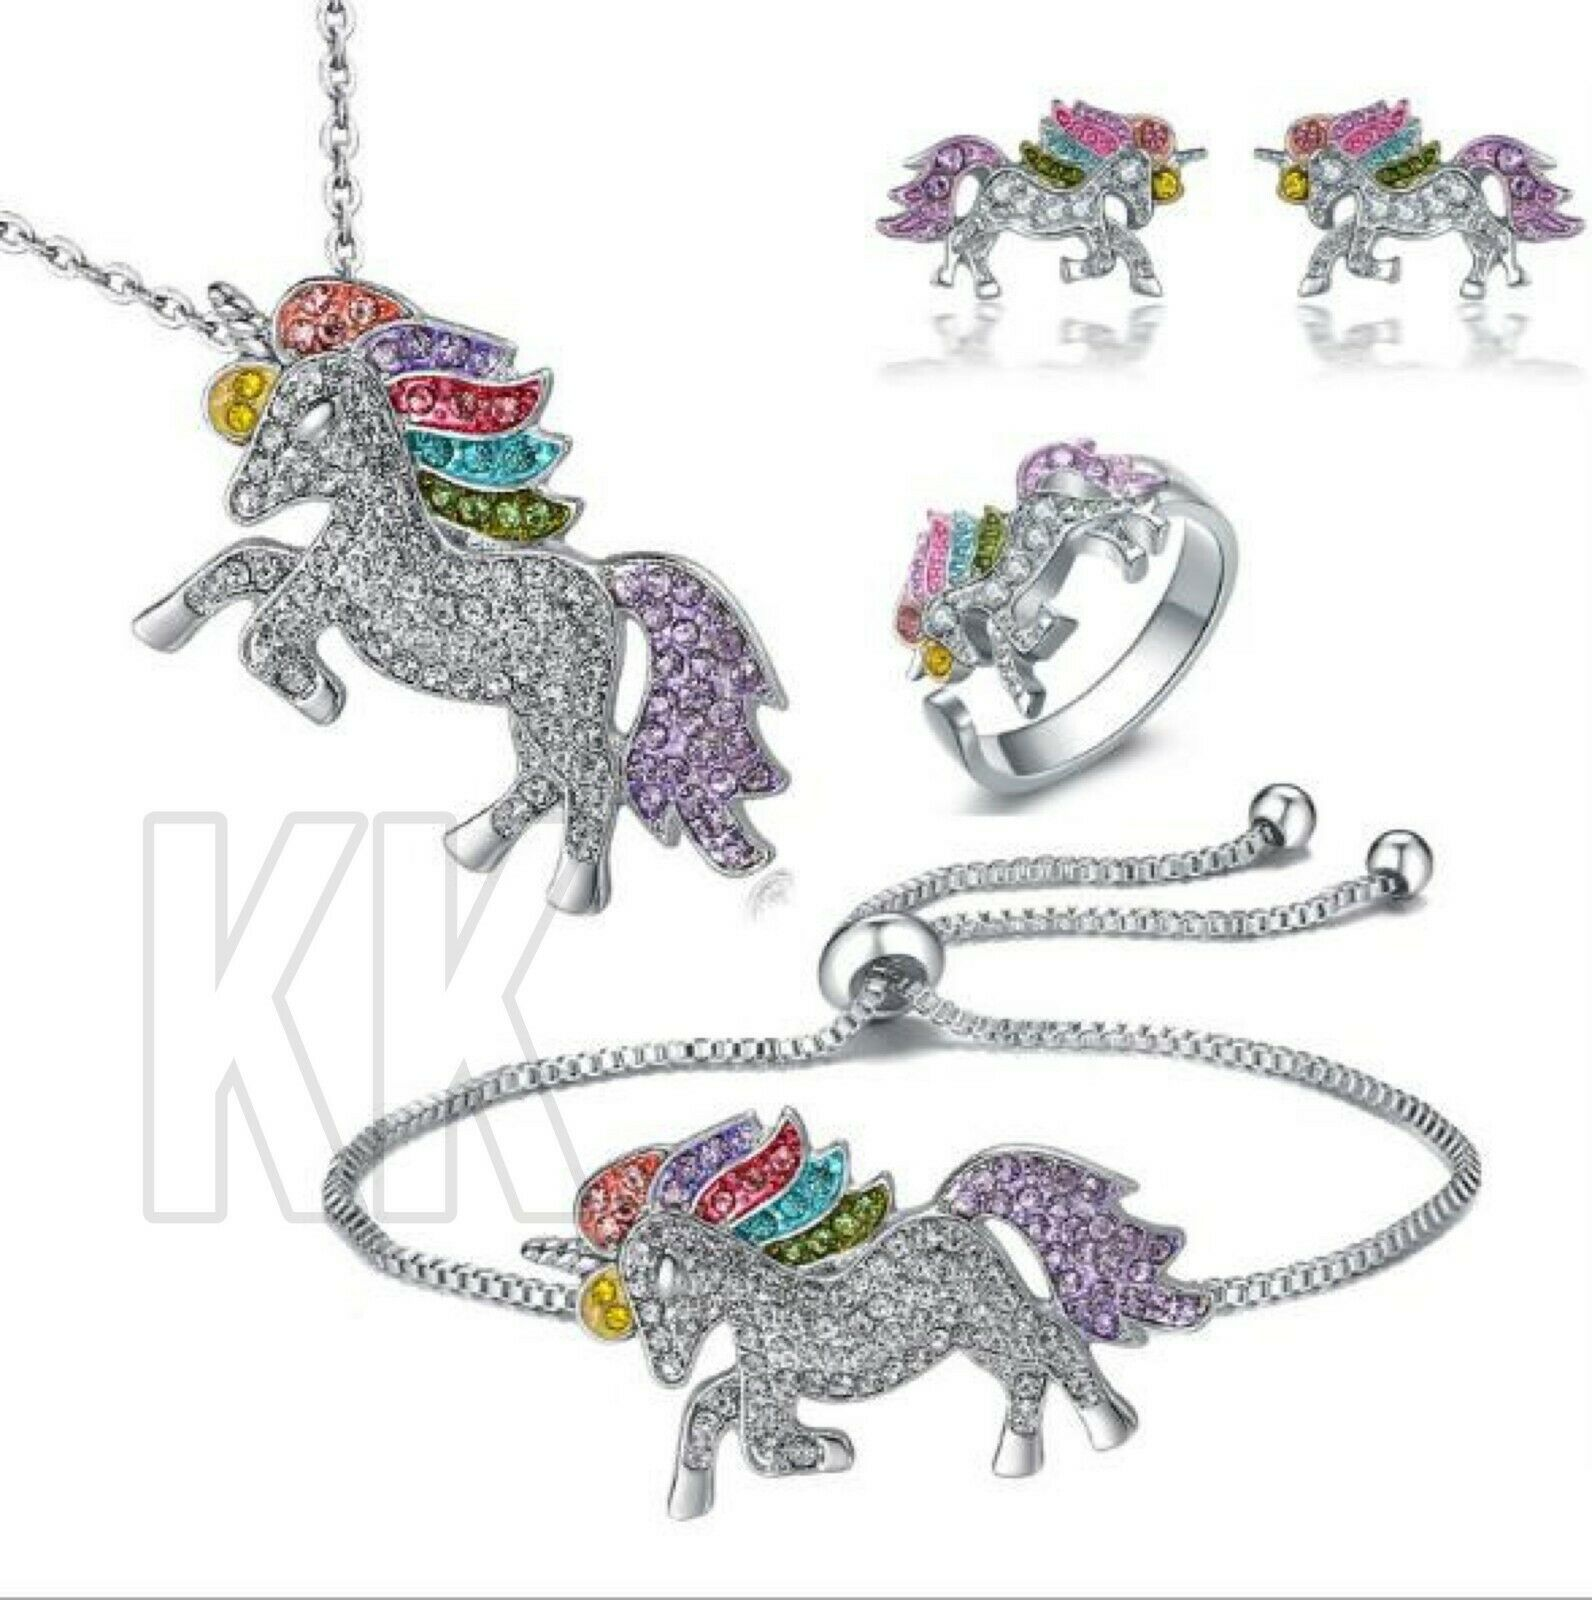 Jewellery - Unicorn Pendant Necklace Chain Flying Horse Kids Girls Jewellery Party Gifts uk